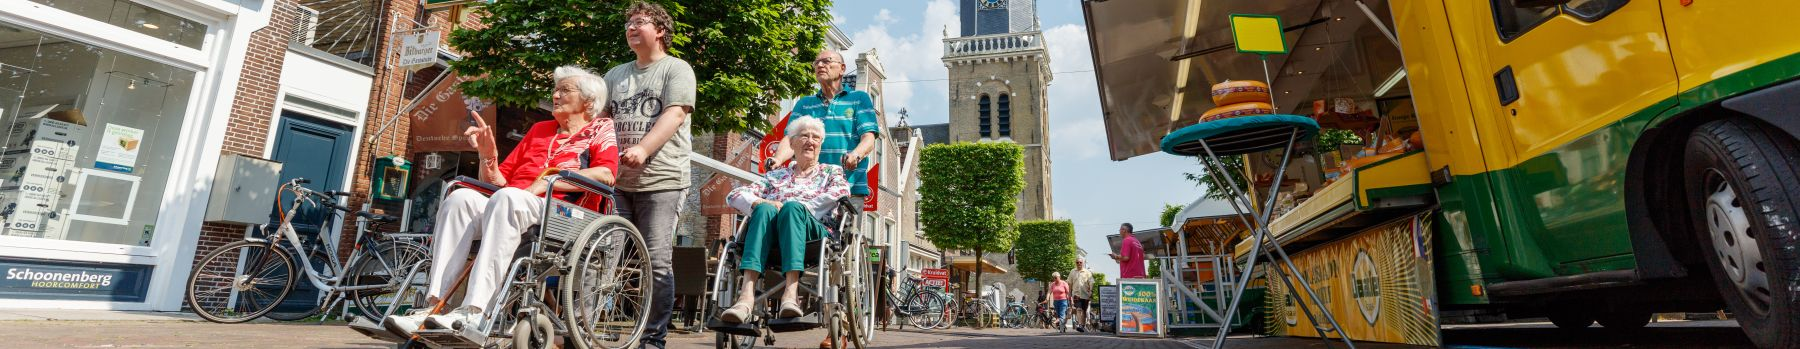 Woonzorgcentrum Sint Theresia in Joure